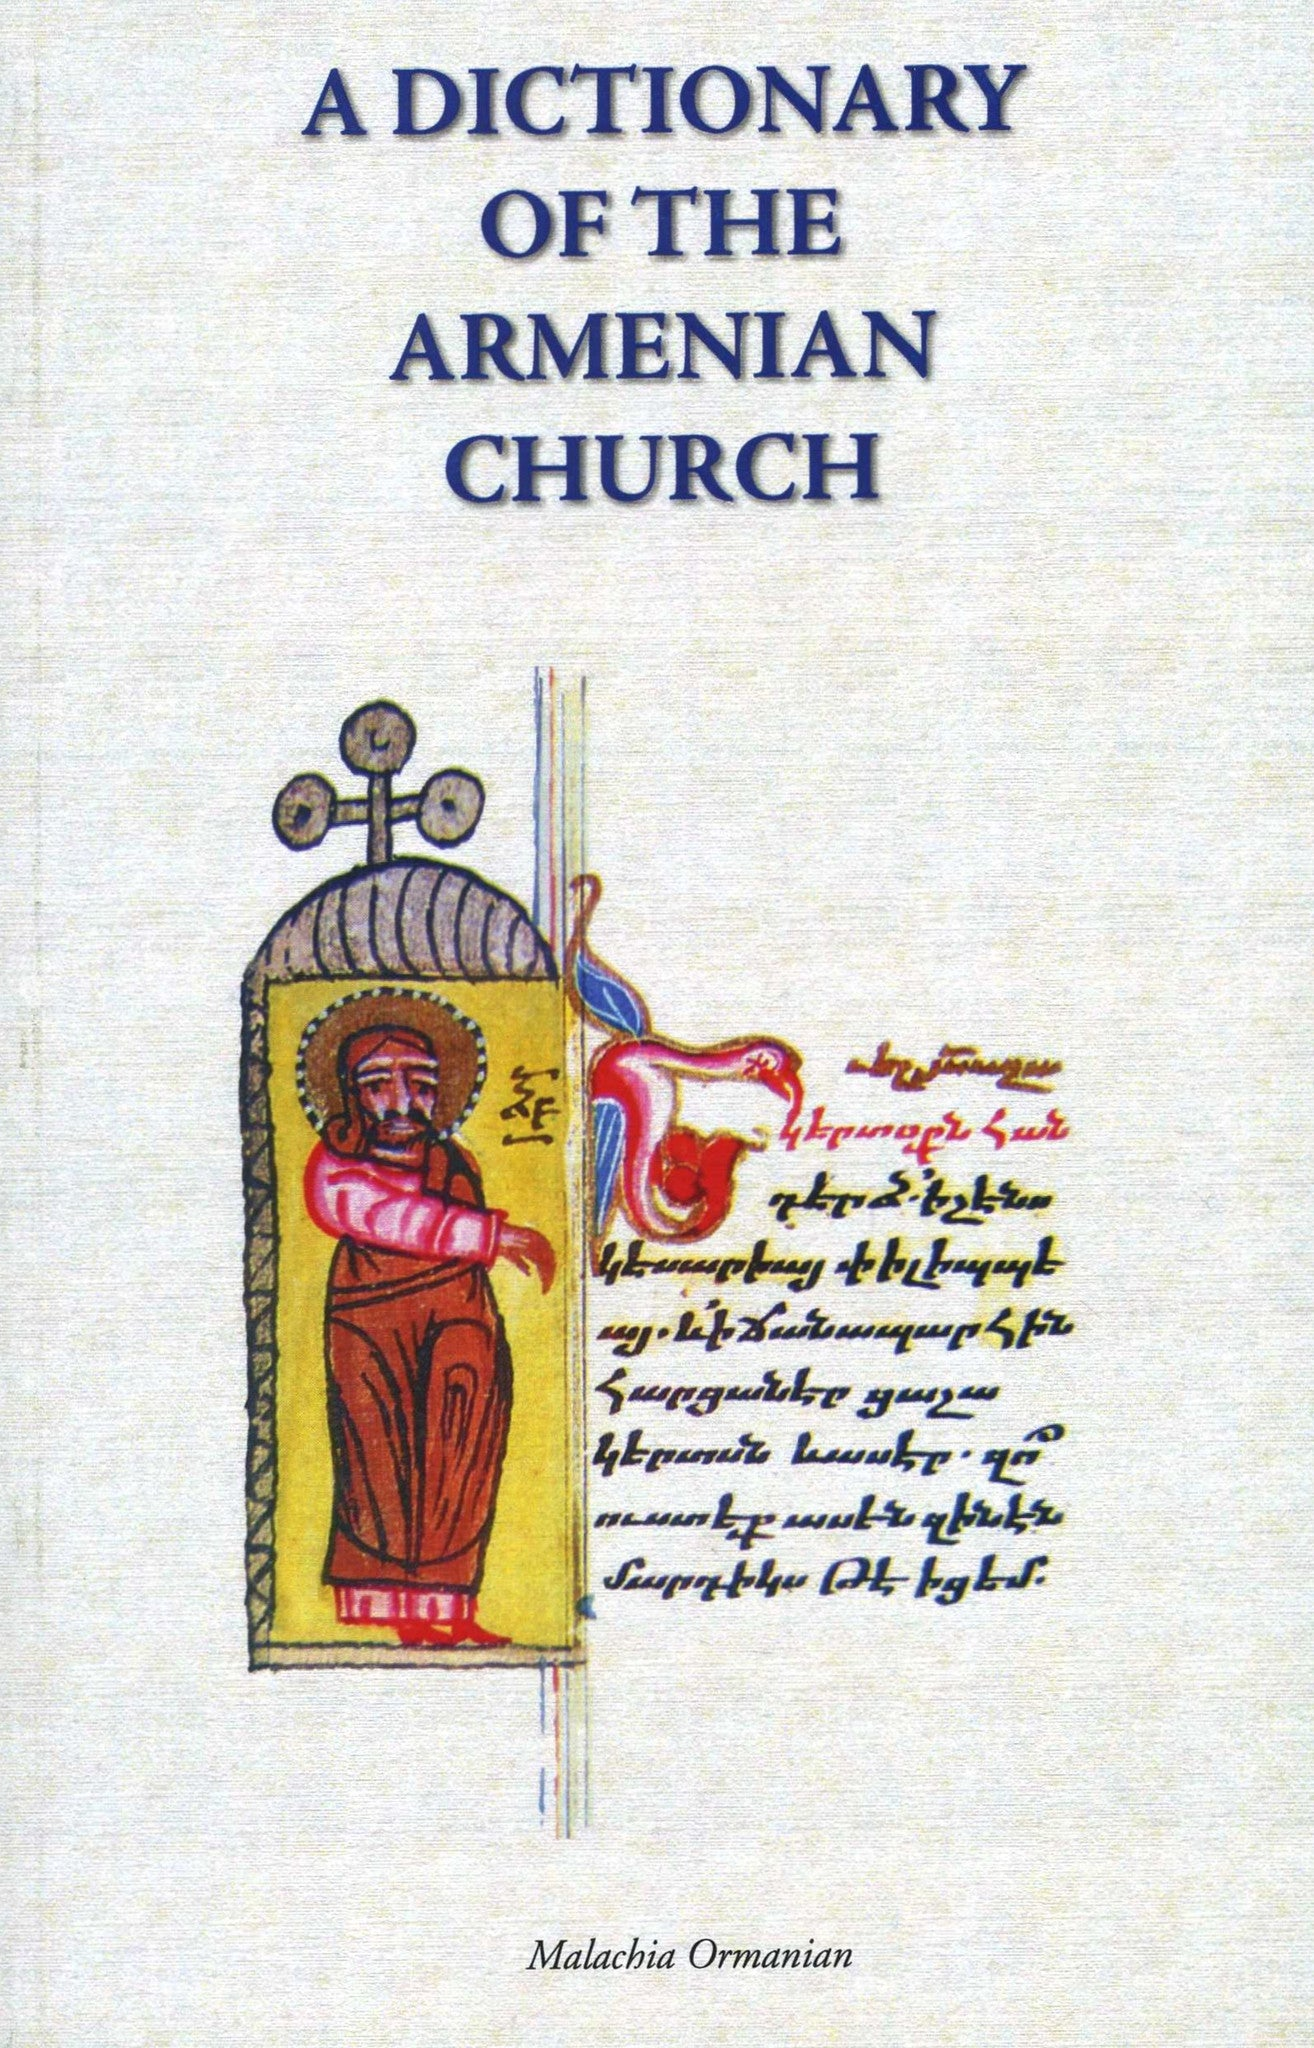 DICTIONARY OF THE ARMENIAN CHURCH